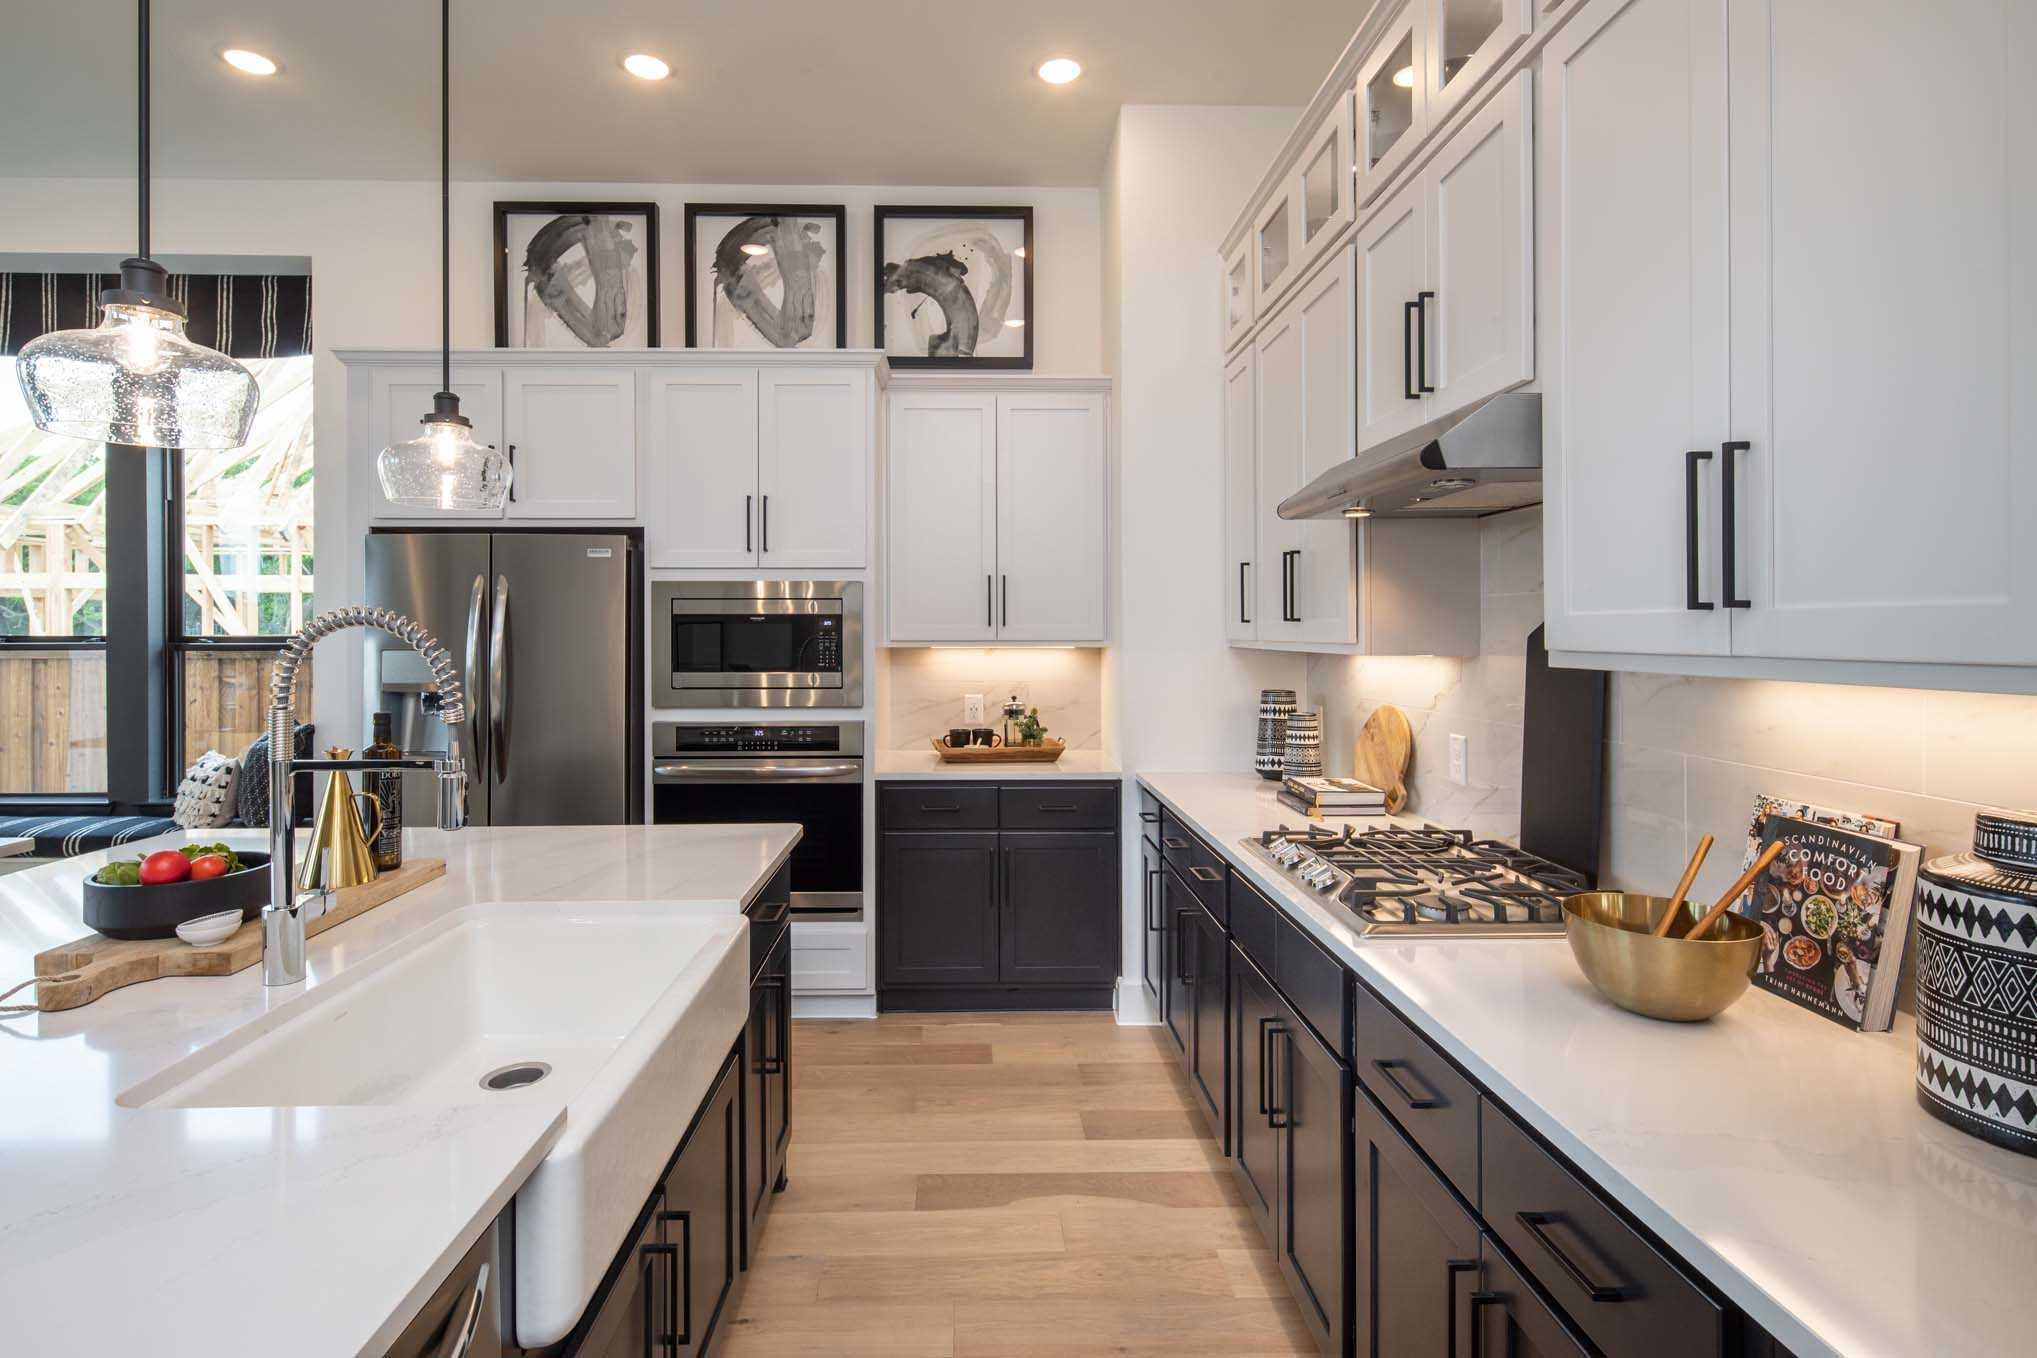 Kitchen featured in the Plan Davenport By Highland Homes in Houston, TX